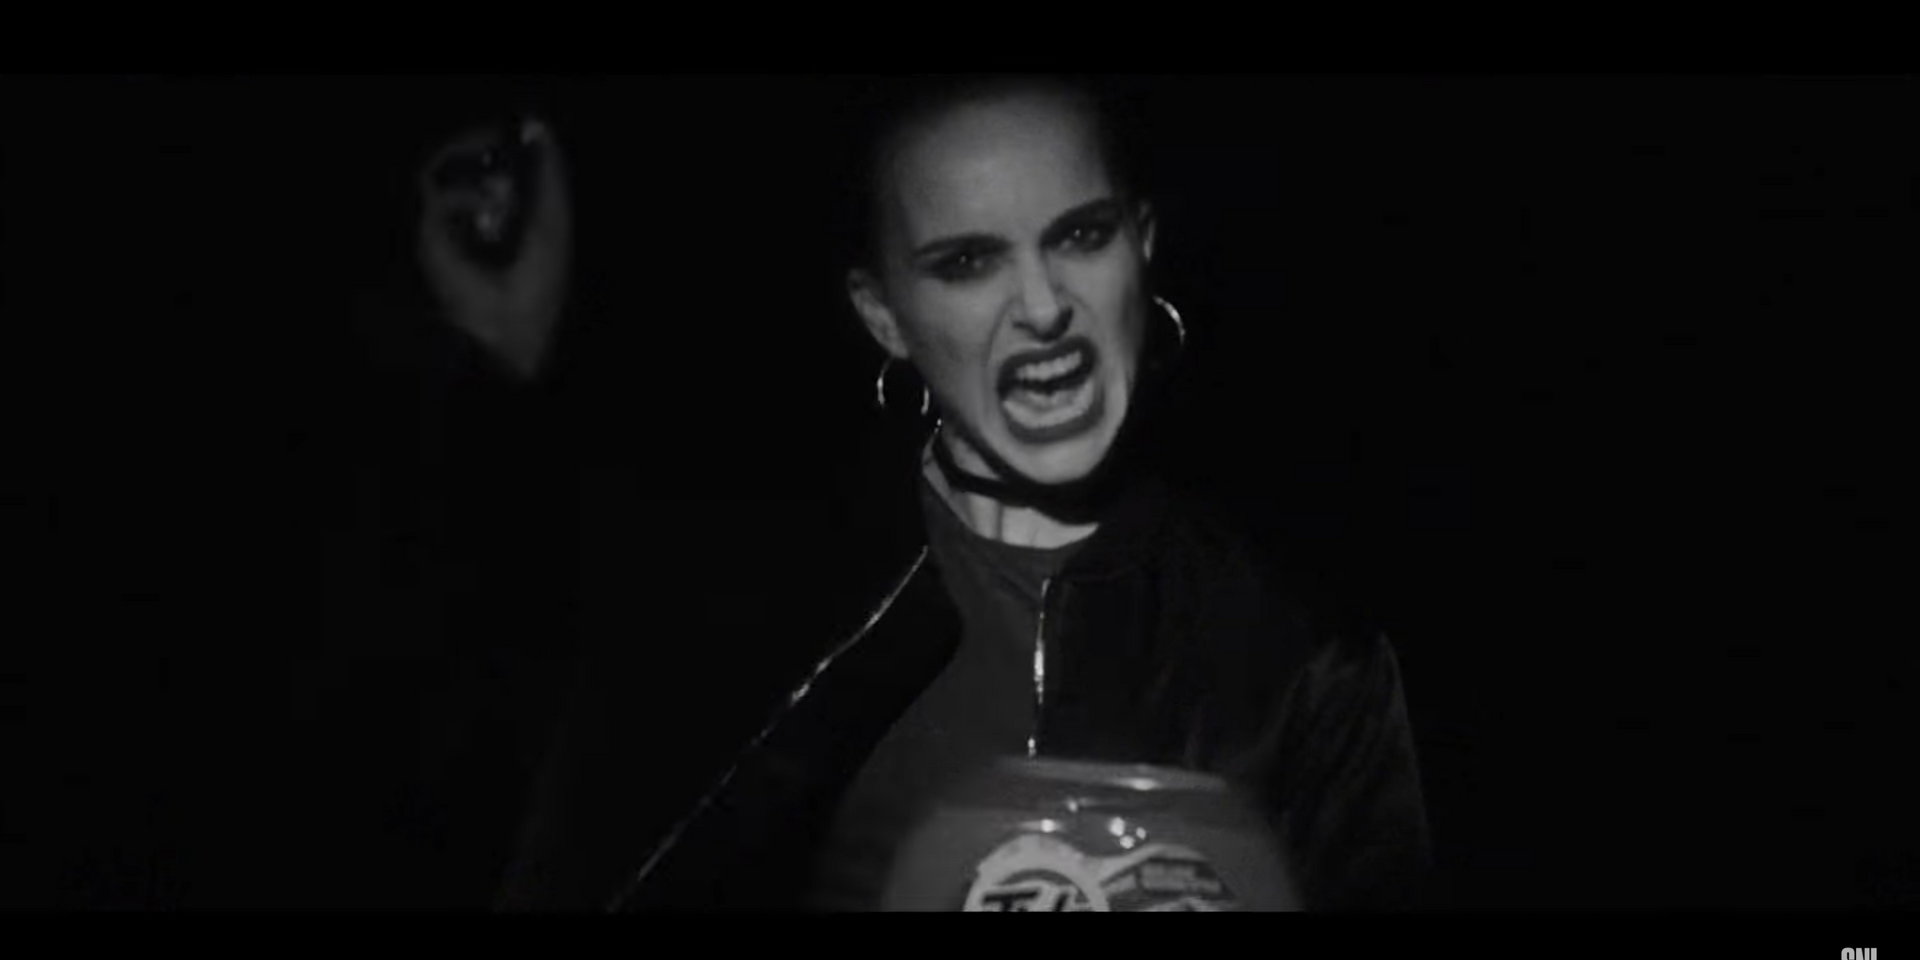 Natalie Portman returns to Saturday Night Live with another foul-mouthed, hilarious rap – watch